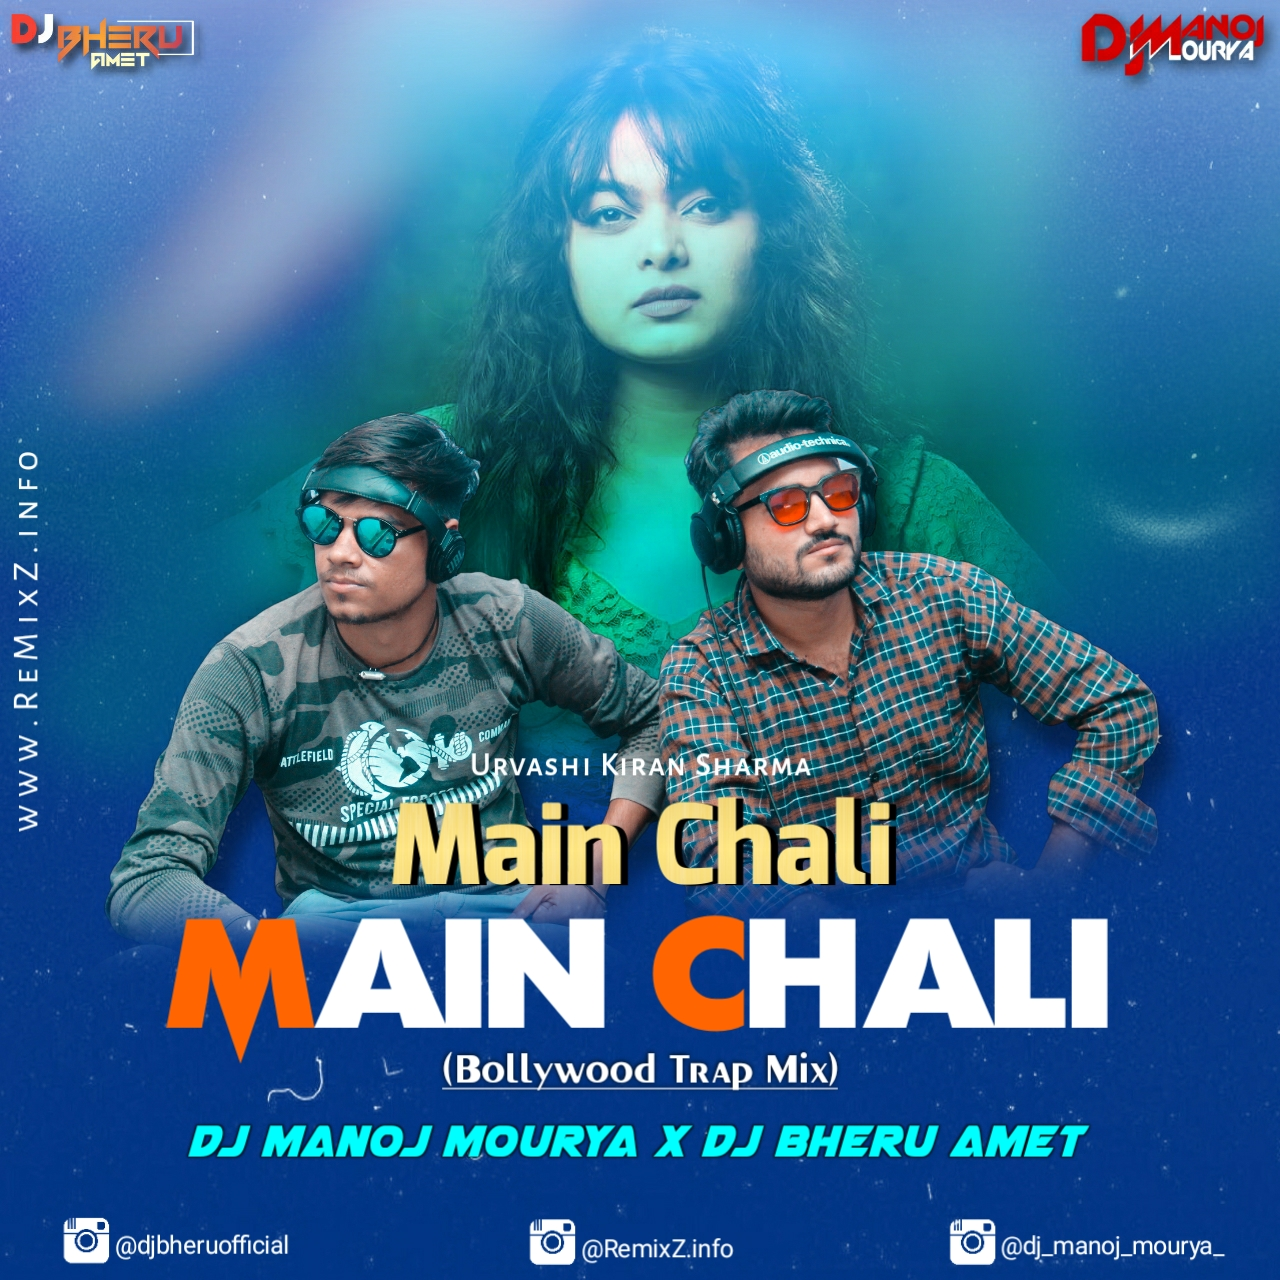 main-chali-main-chali-bollywood-trap.jpg